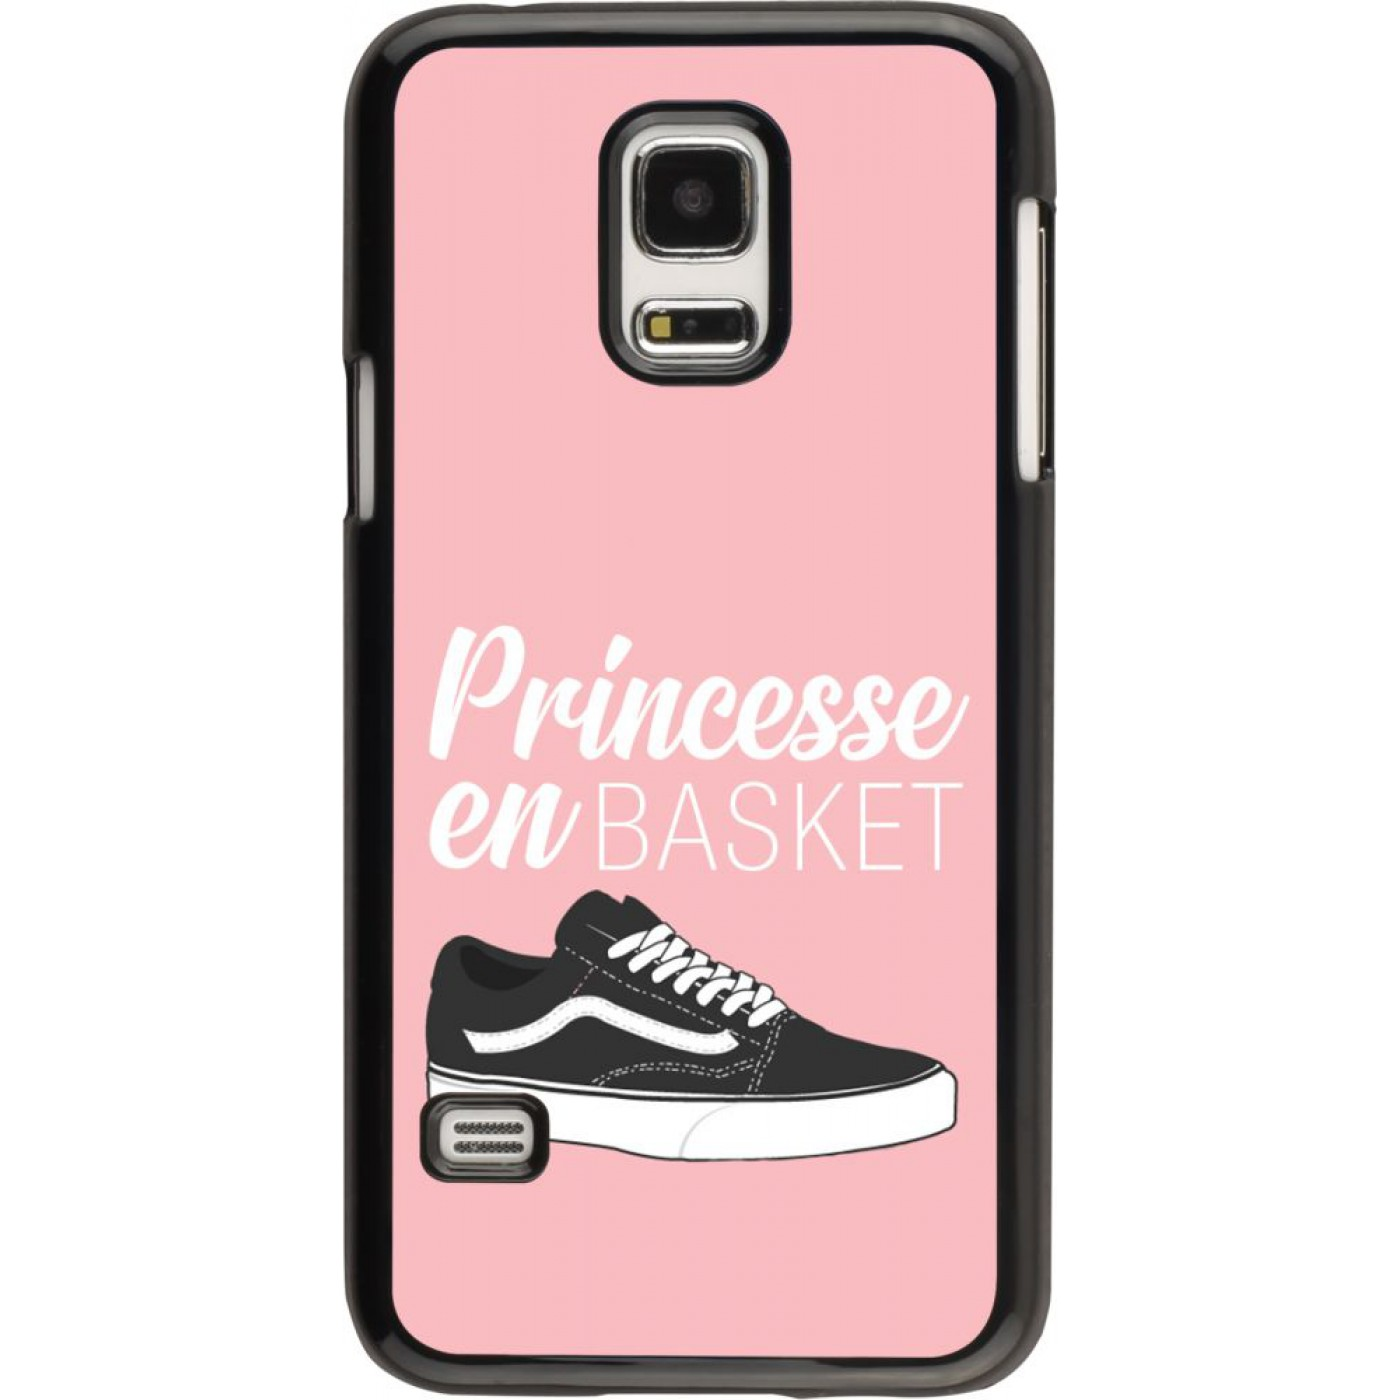 coque samsung galaxy s5 mini princesse en basket. Black Bedroom Furniture Sets. Home Design Ideas